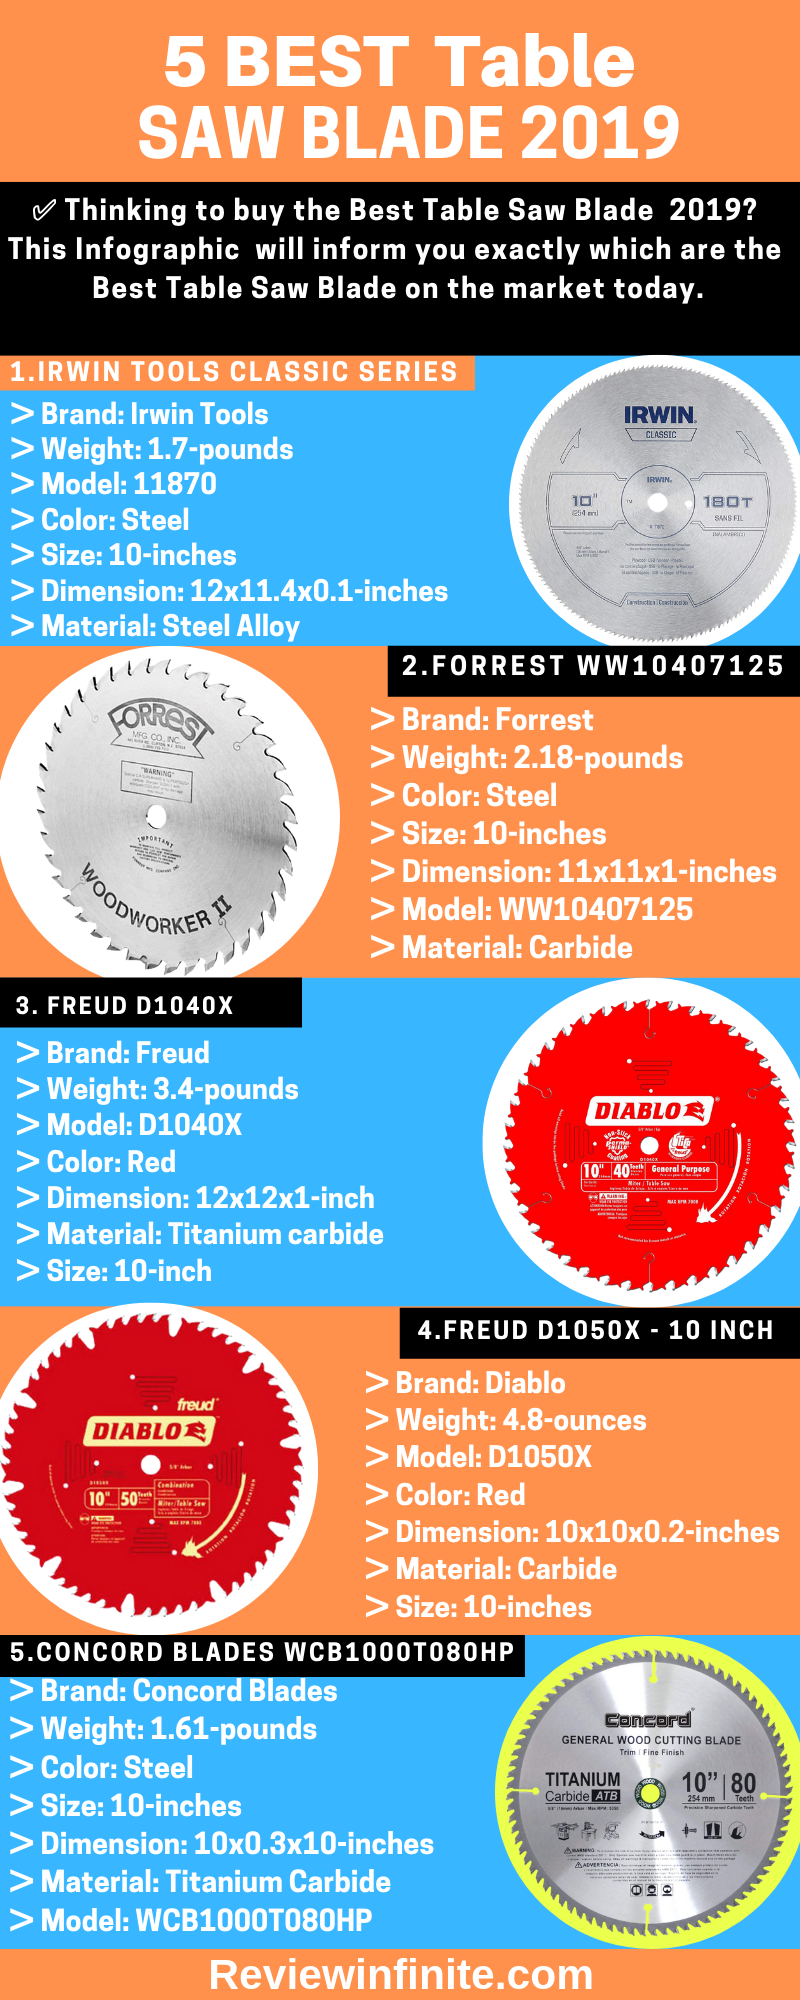 Best Saw Blade For Table Saw Review Top Picks Review Infinite Table Saw Blades Table Saw Best Table Saw